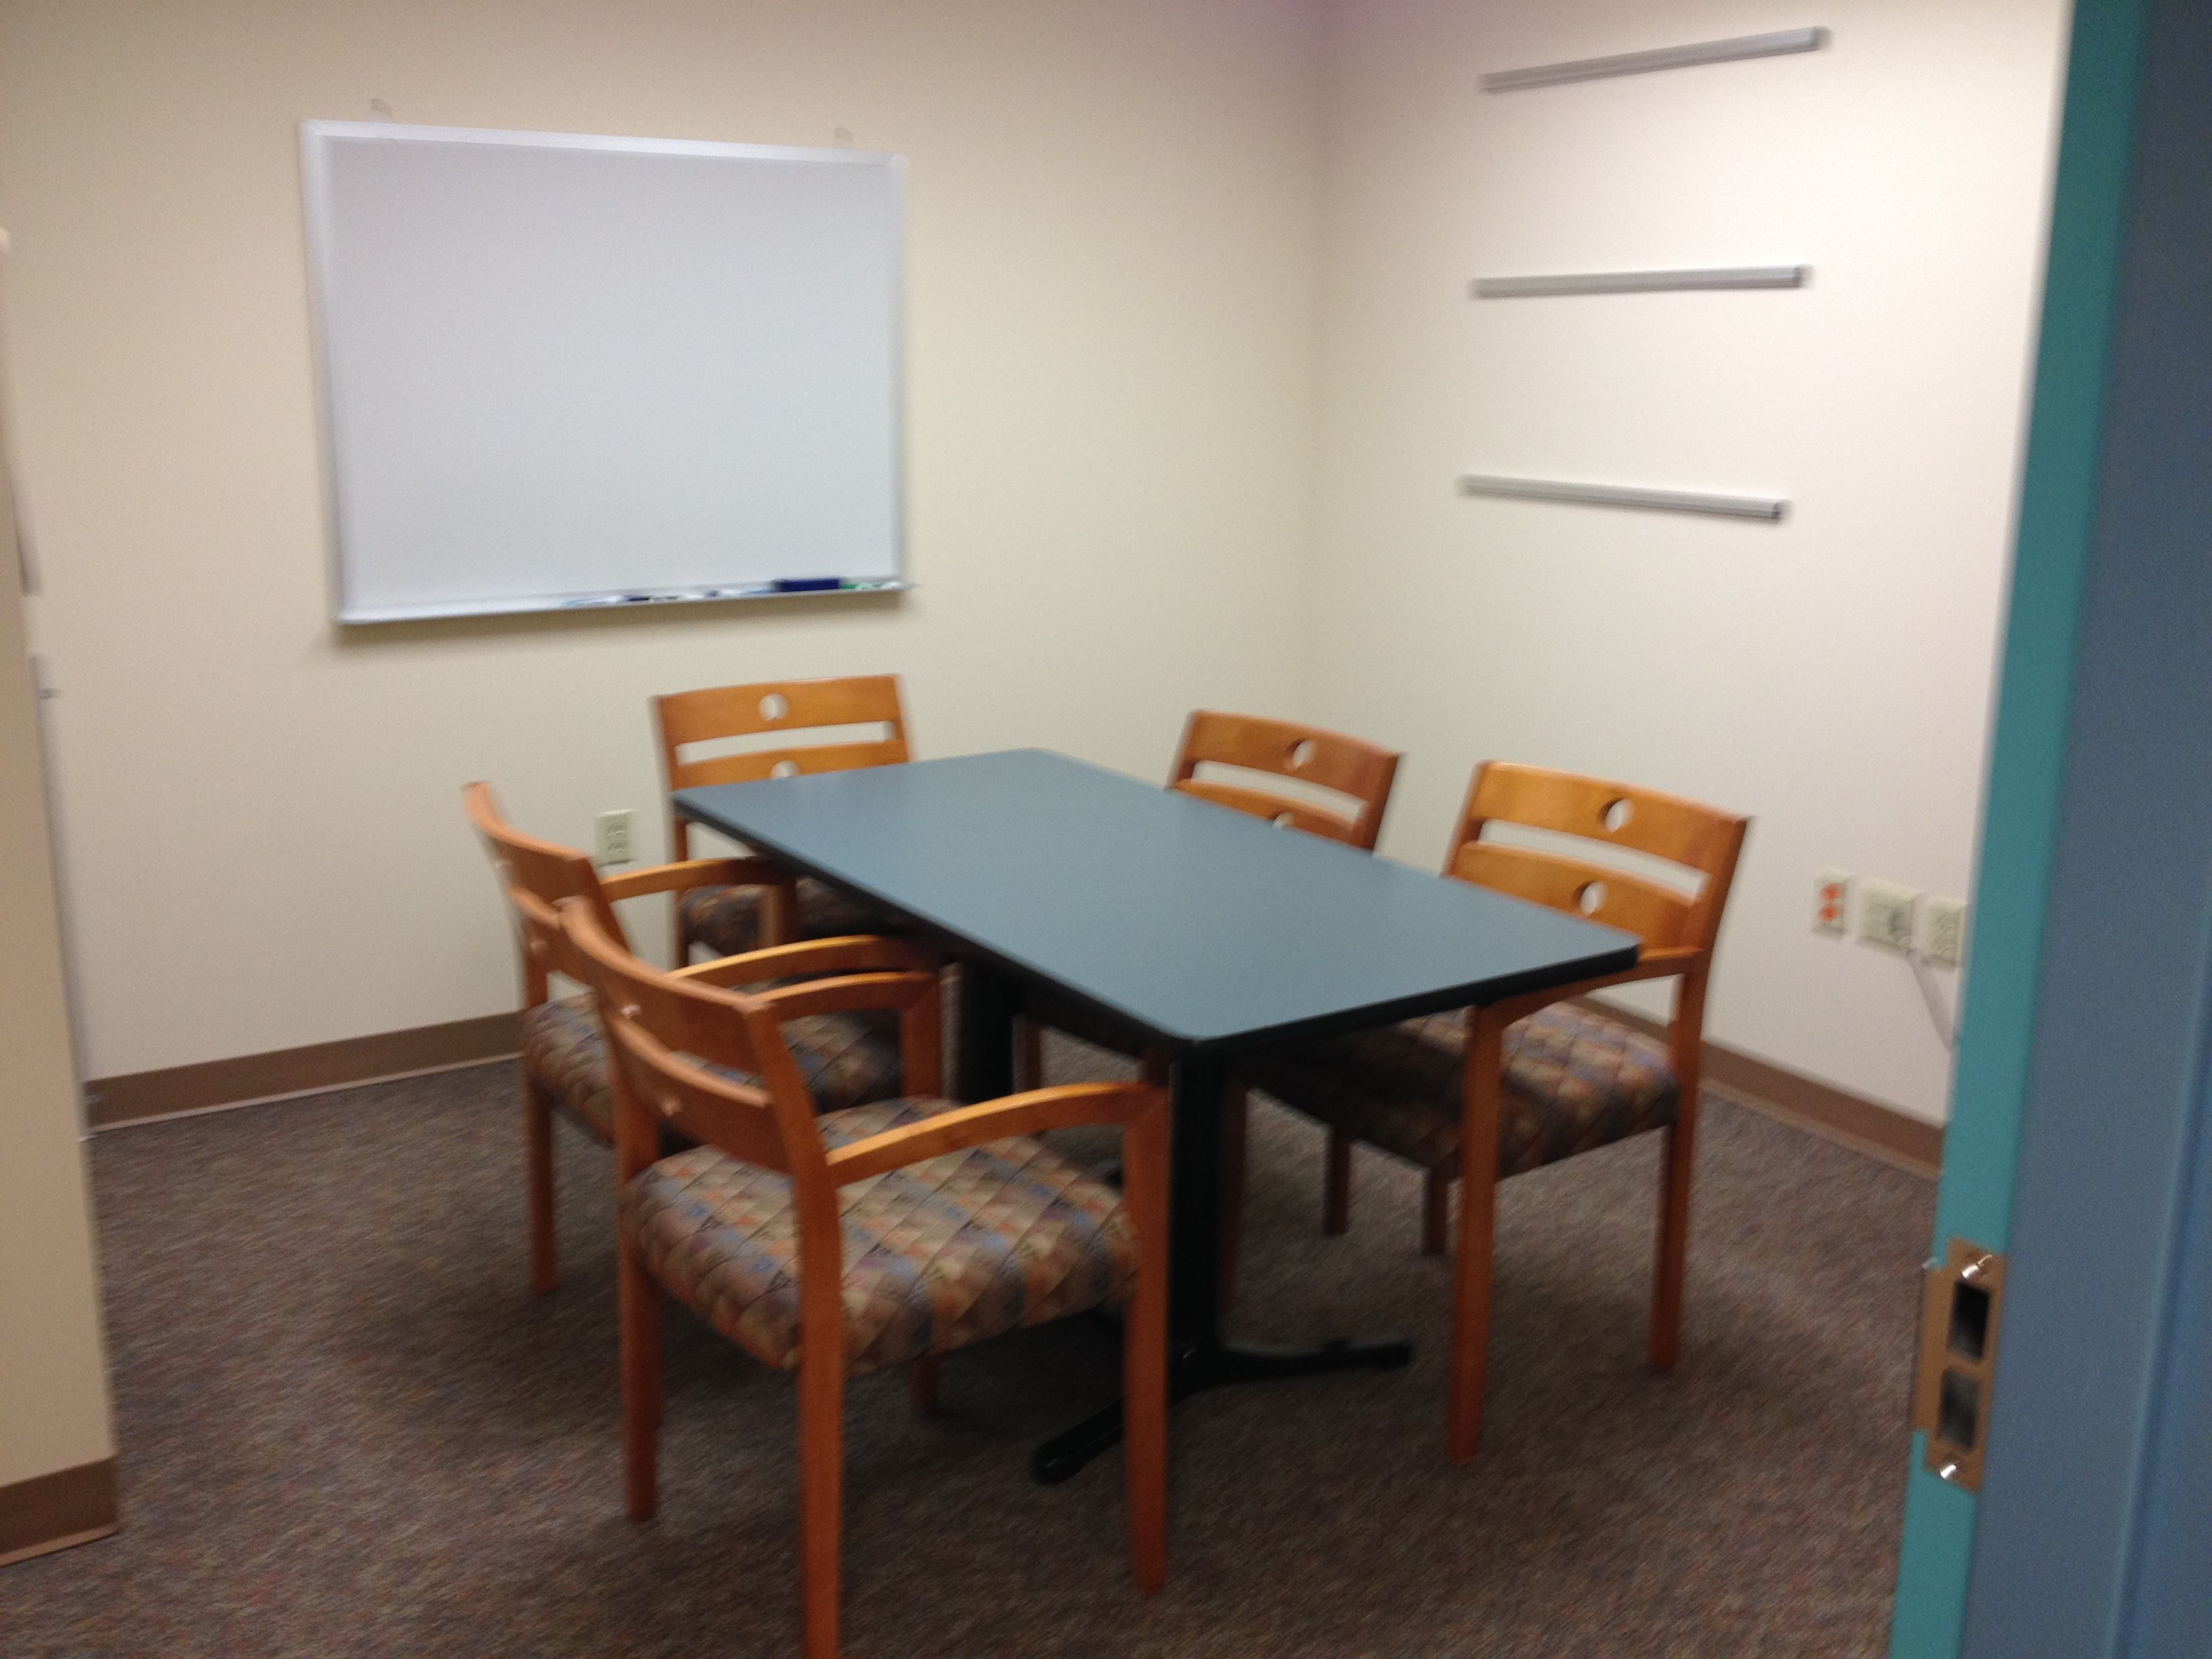 Small Lounge Conference Room 120 Sq Ft Small Lounge Room Conference Room